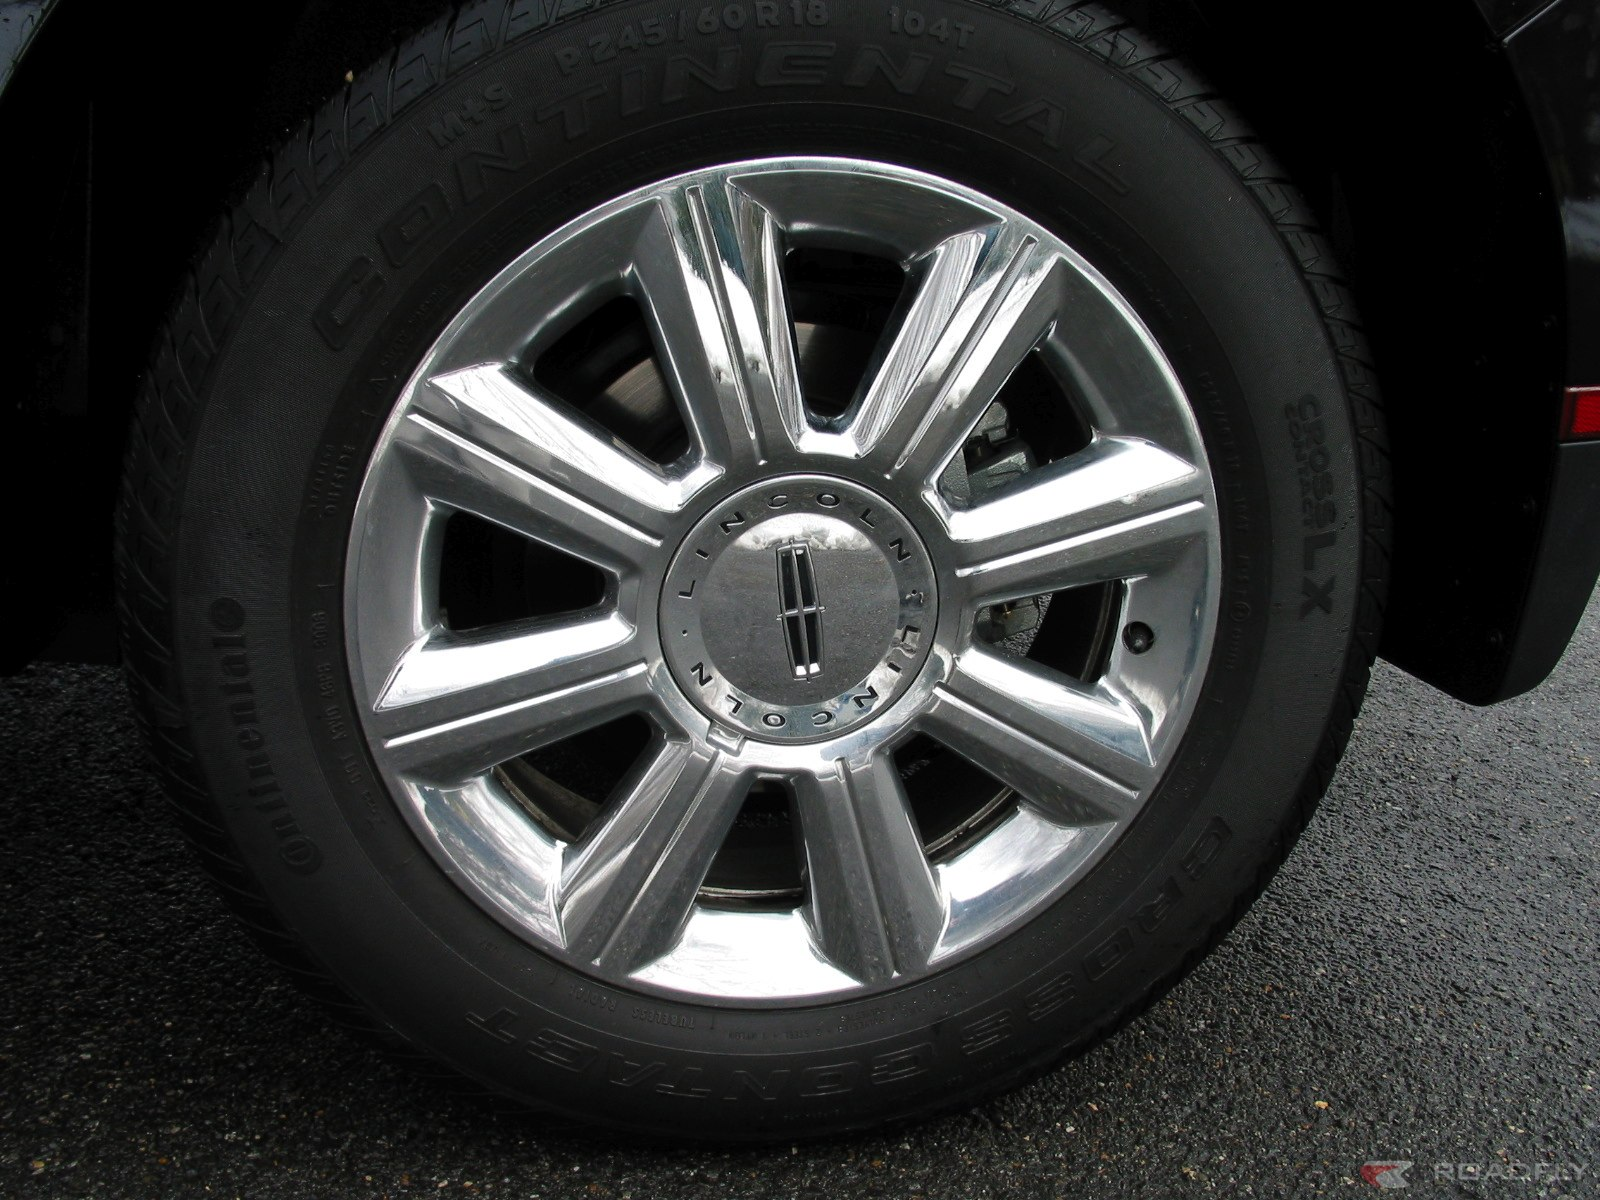 Lincoln MKX wheels #3